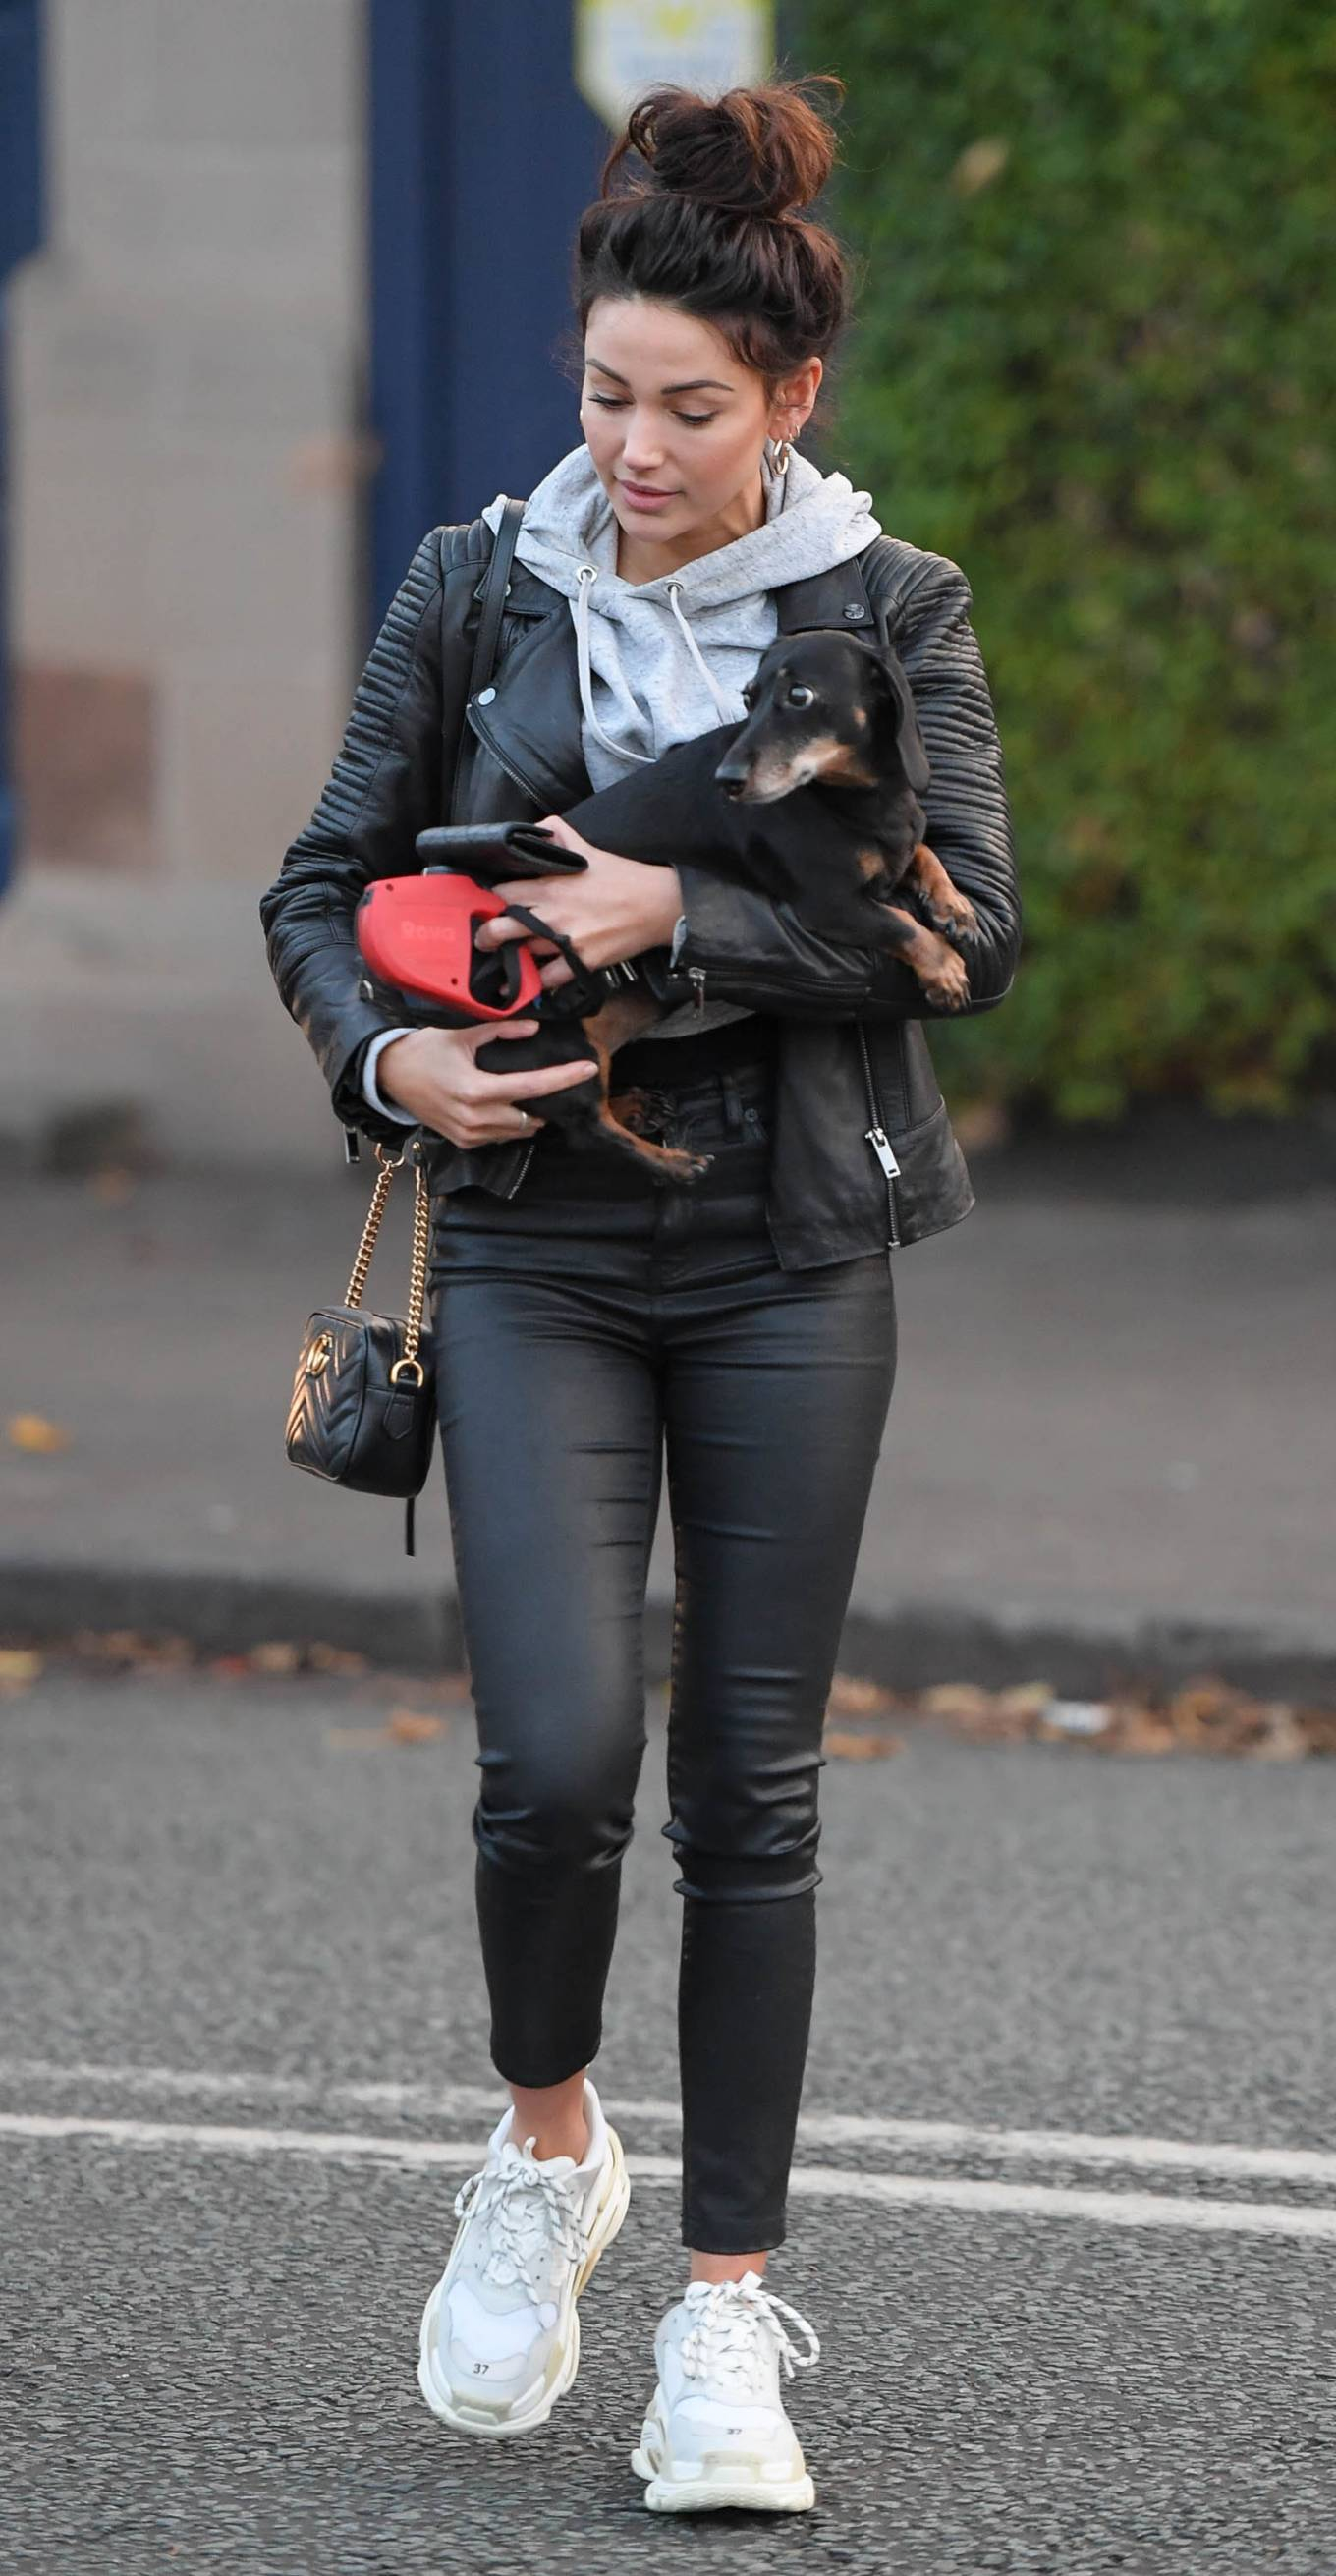 Michelle Keegan donning a grey tucked in hoodie with full sleeves